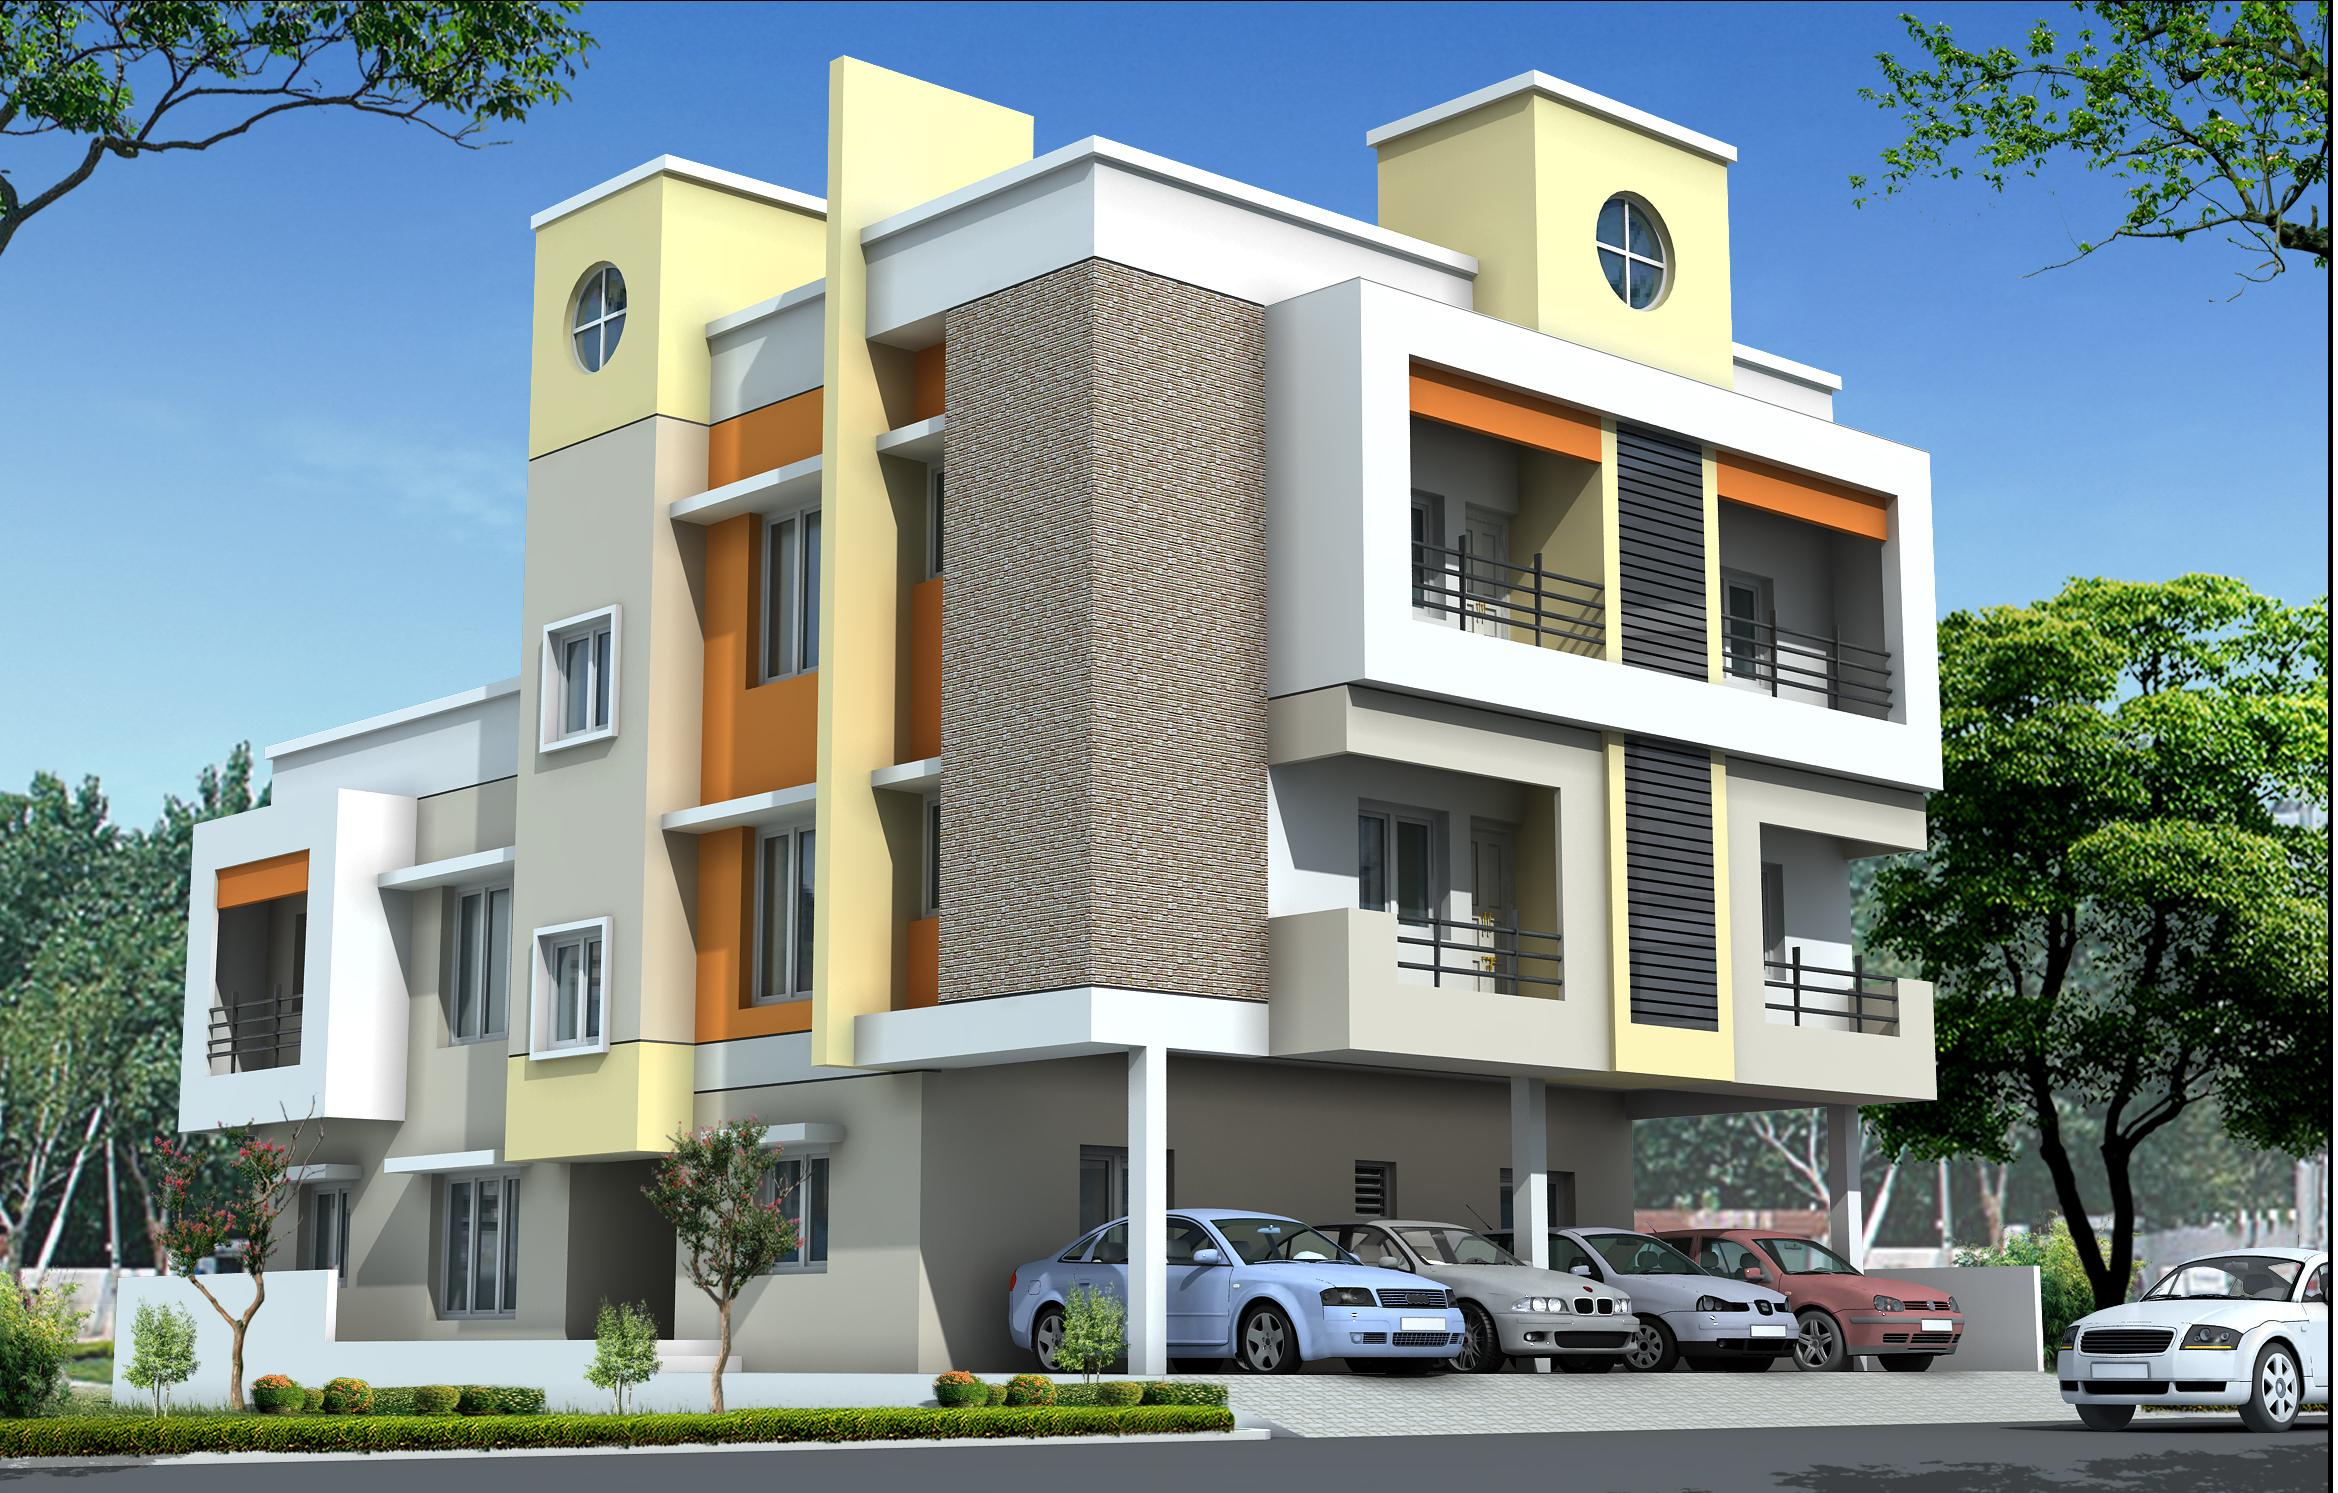 Elevations of residential buildings joy studio design for Architecture elevation